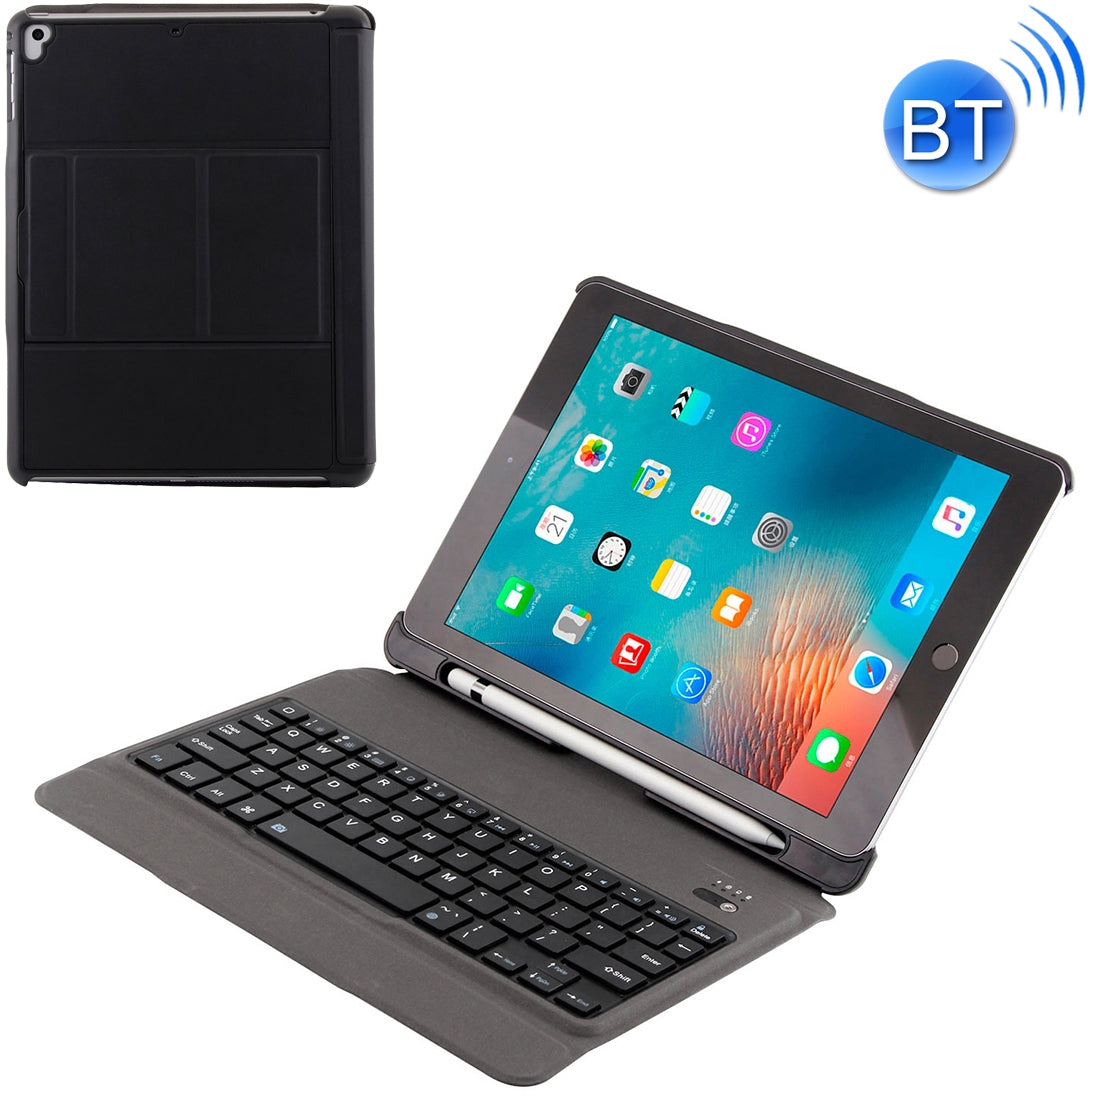 T-201 Detachable Bluetooth 3.0 Ultra-thin Keyboard +  Lambskin Texture Leather Case for iPad Air / Air 2 / iPad Pro 9.7 inch, Support Multi-angle Adjustment (Black)